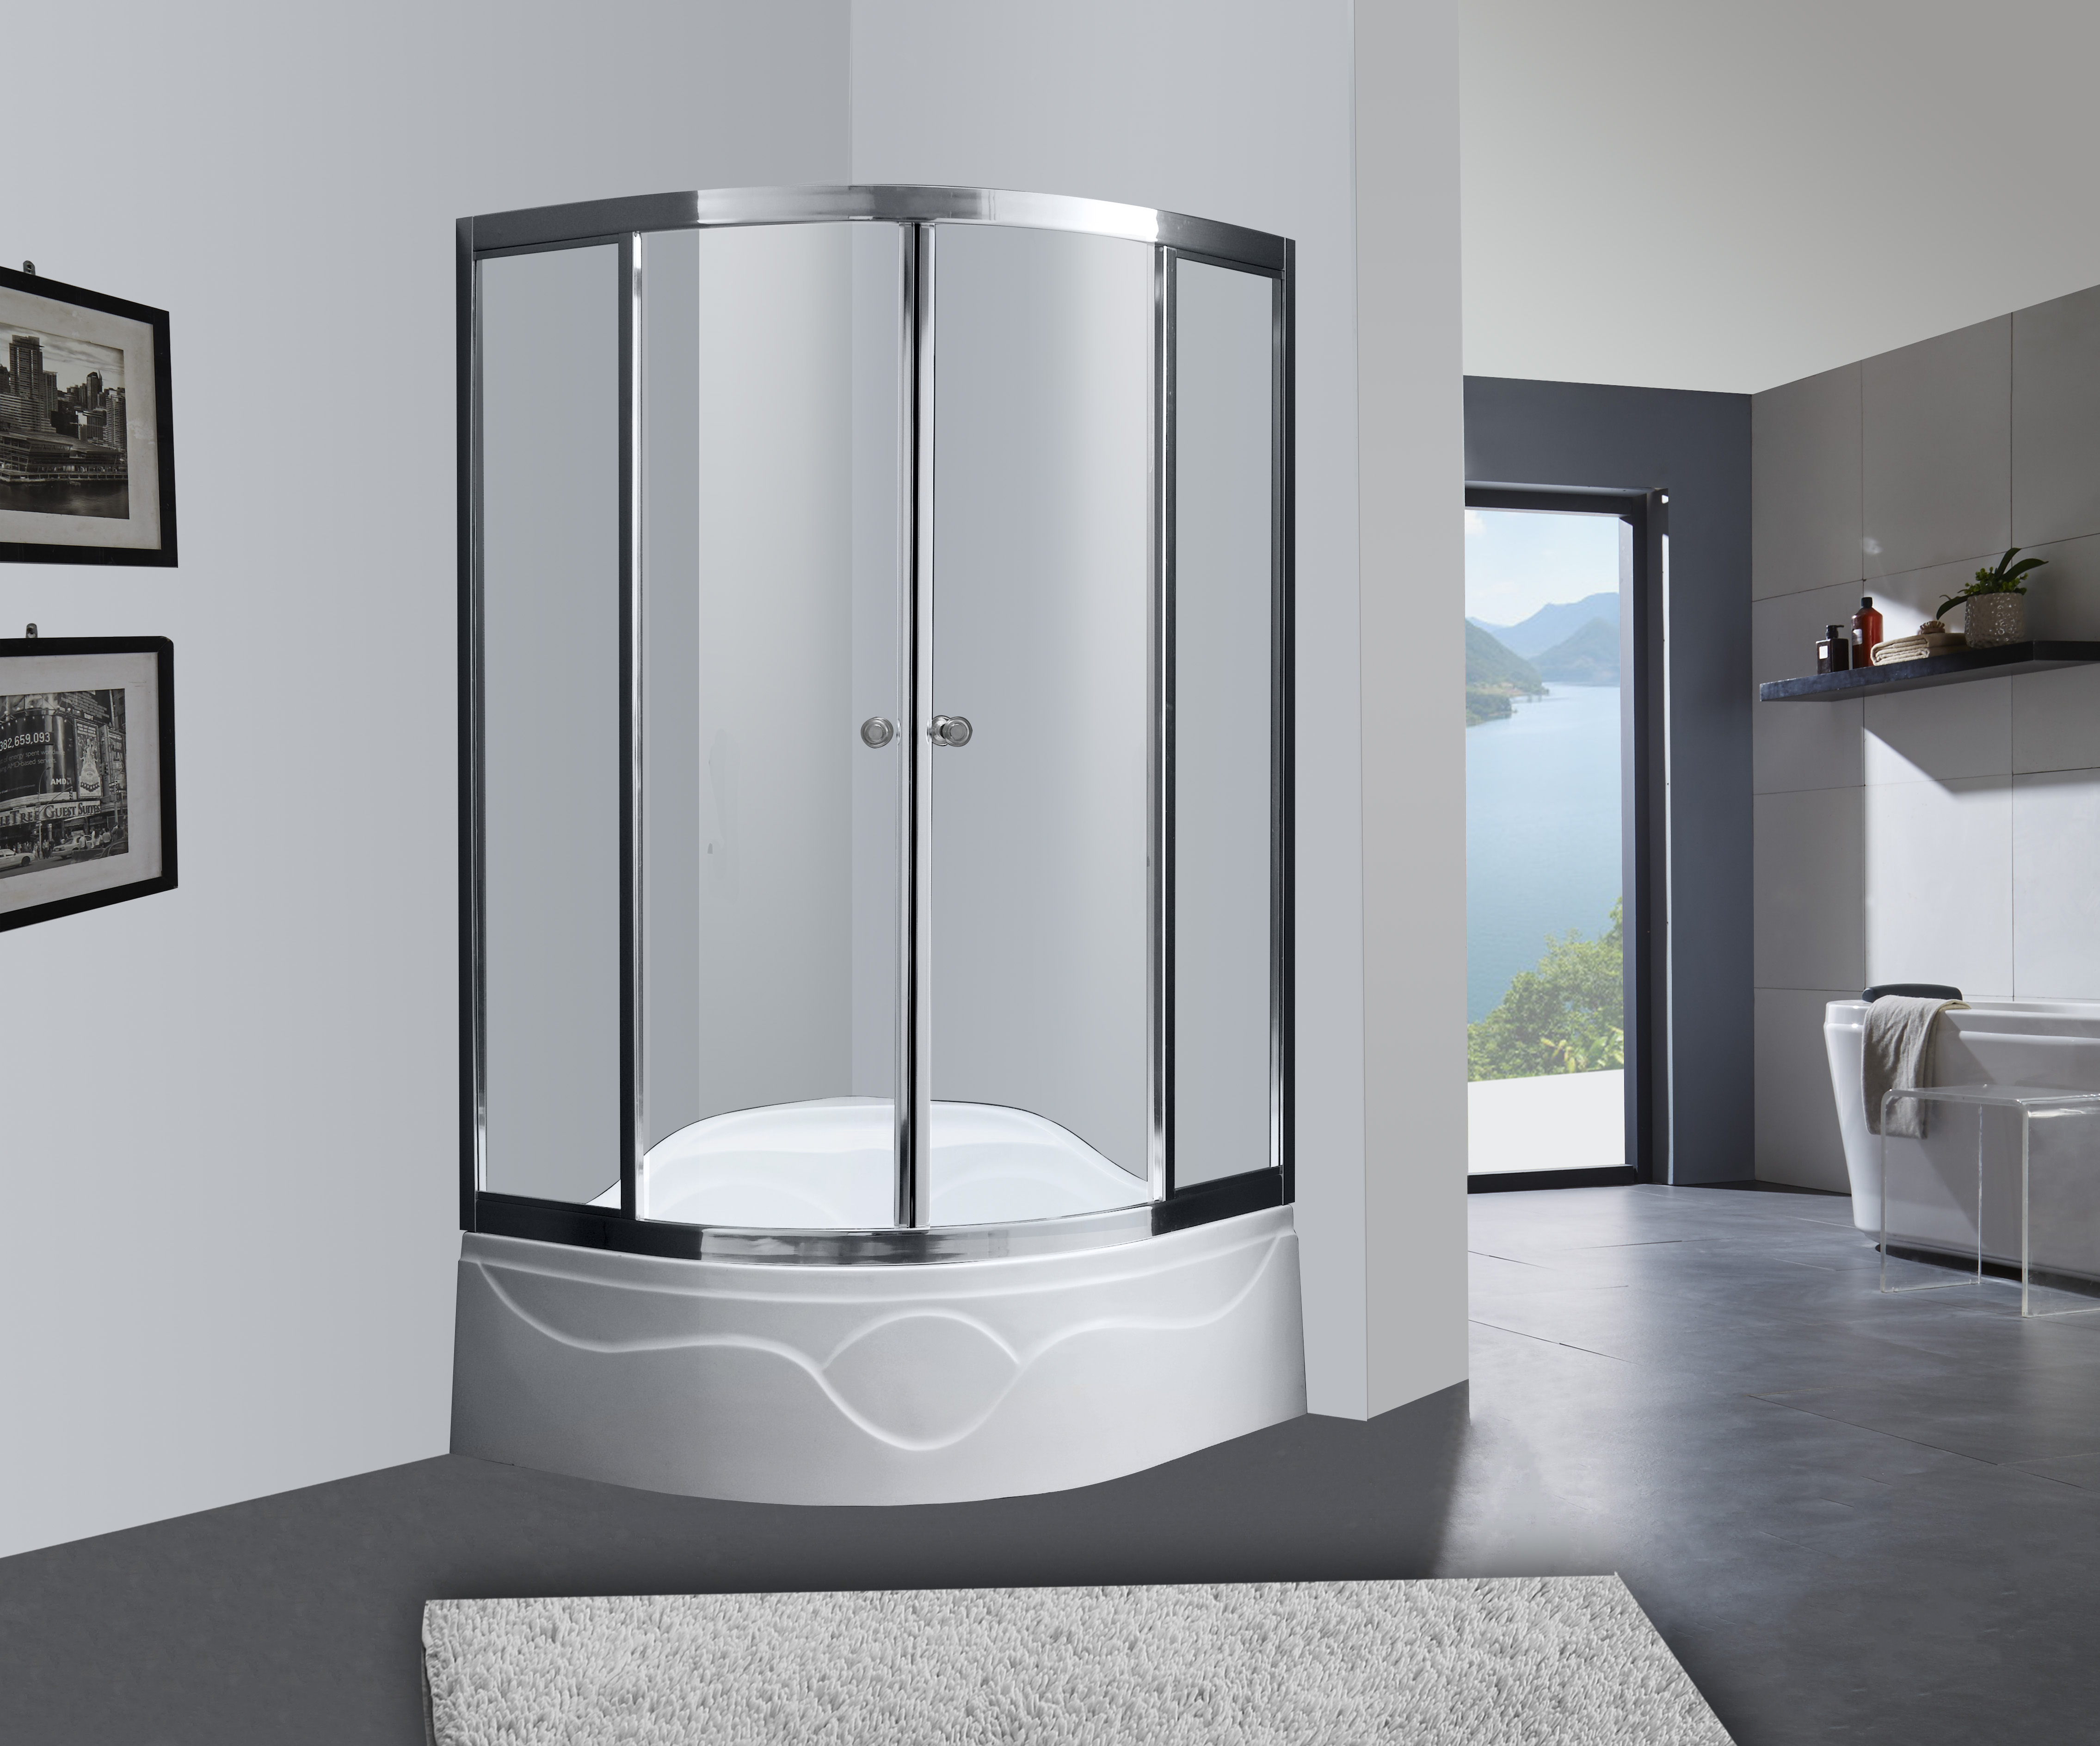 Mini Bathroom Shower Stall With Seat